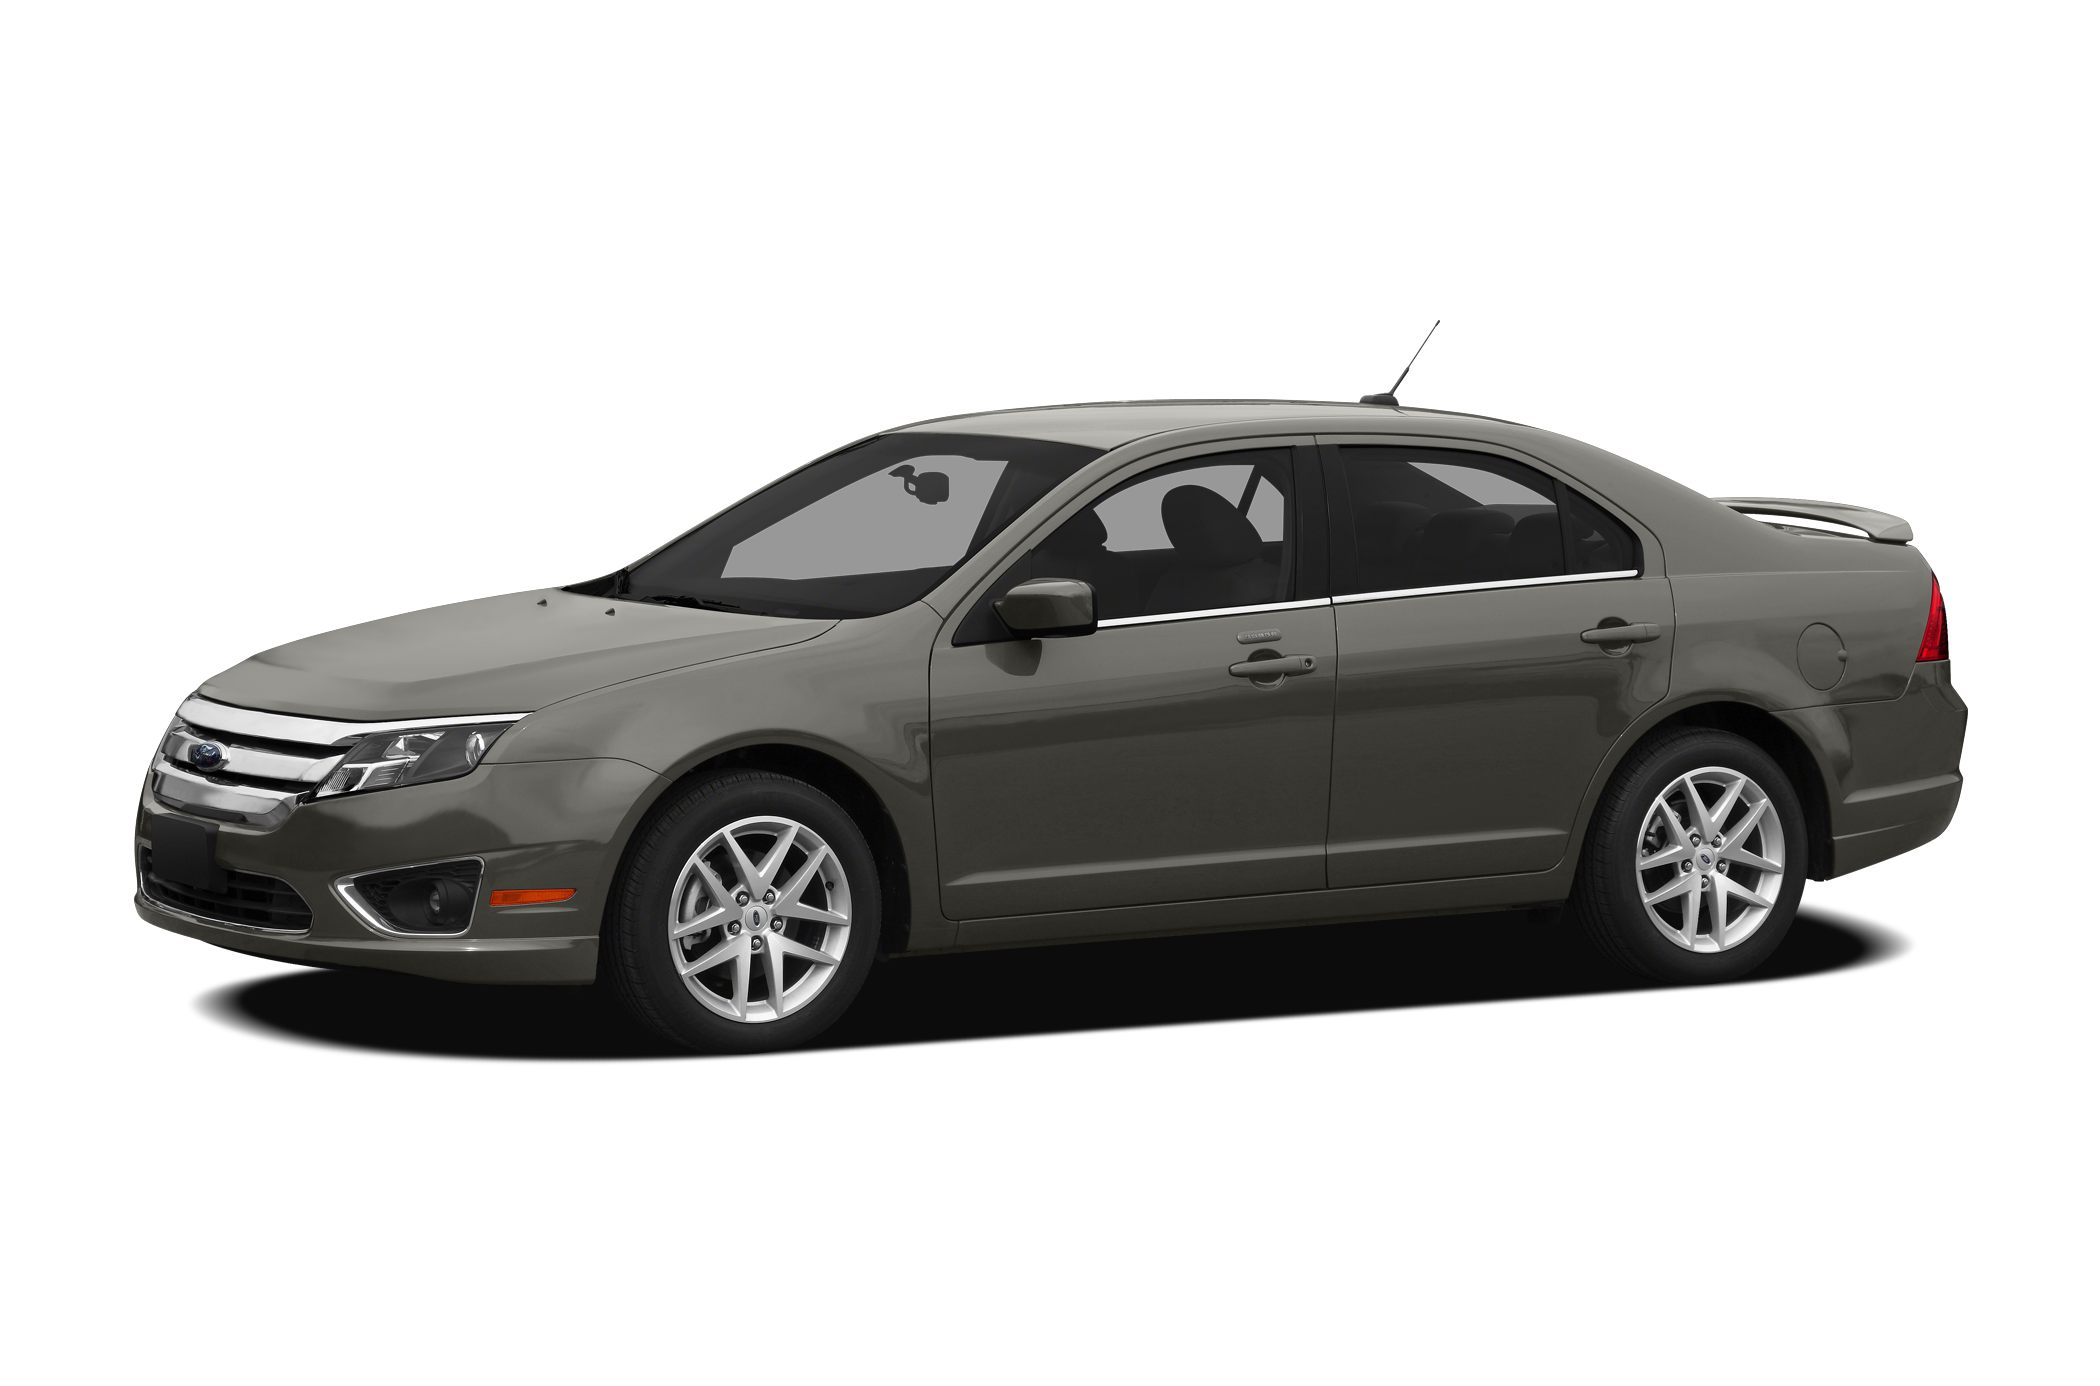 2012 Ford Fusion SE Sedan for sale in Edenton for $12,000 with 45,023 miles.